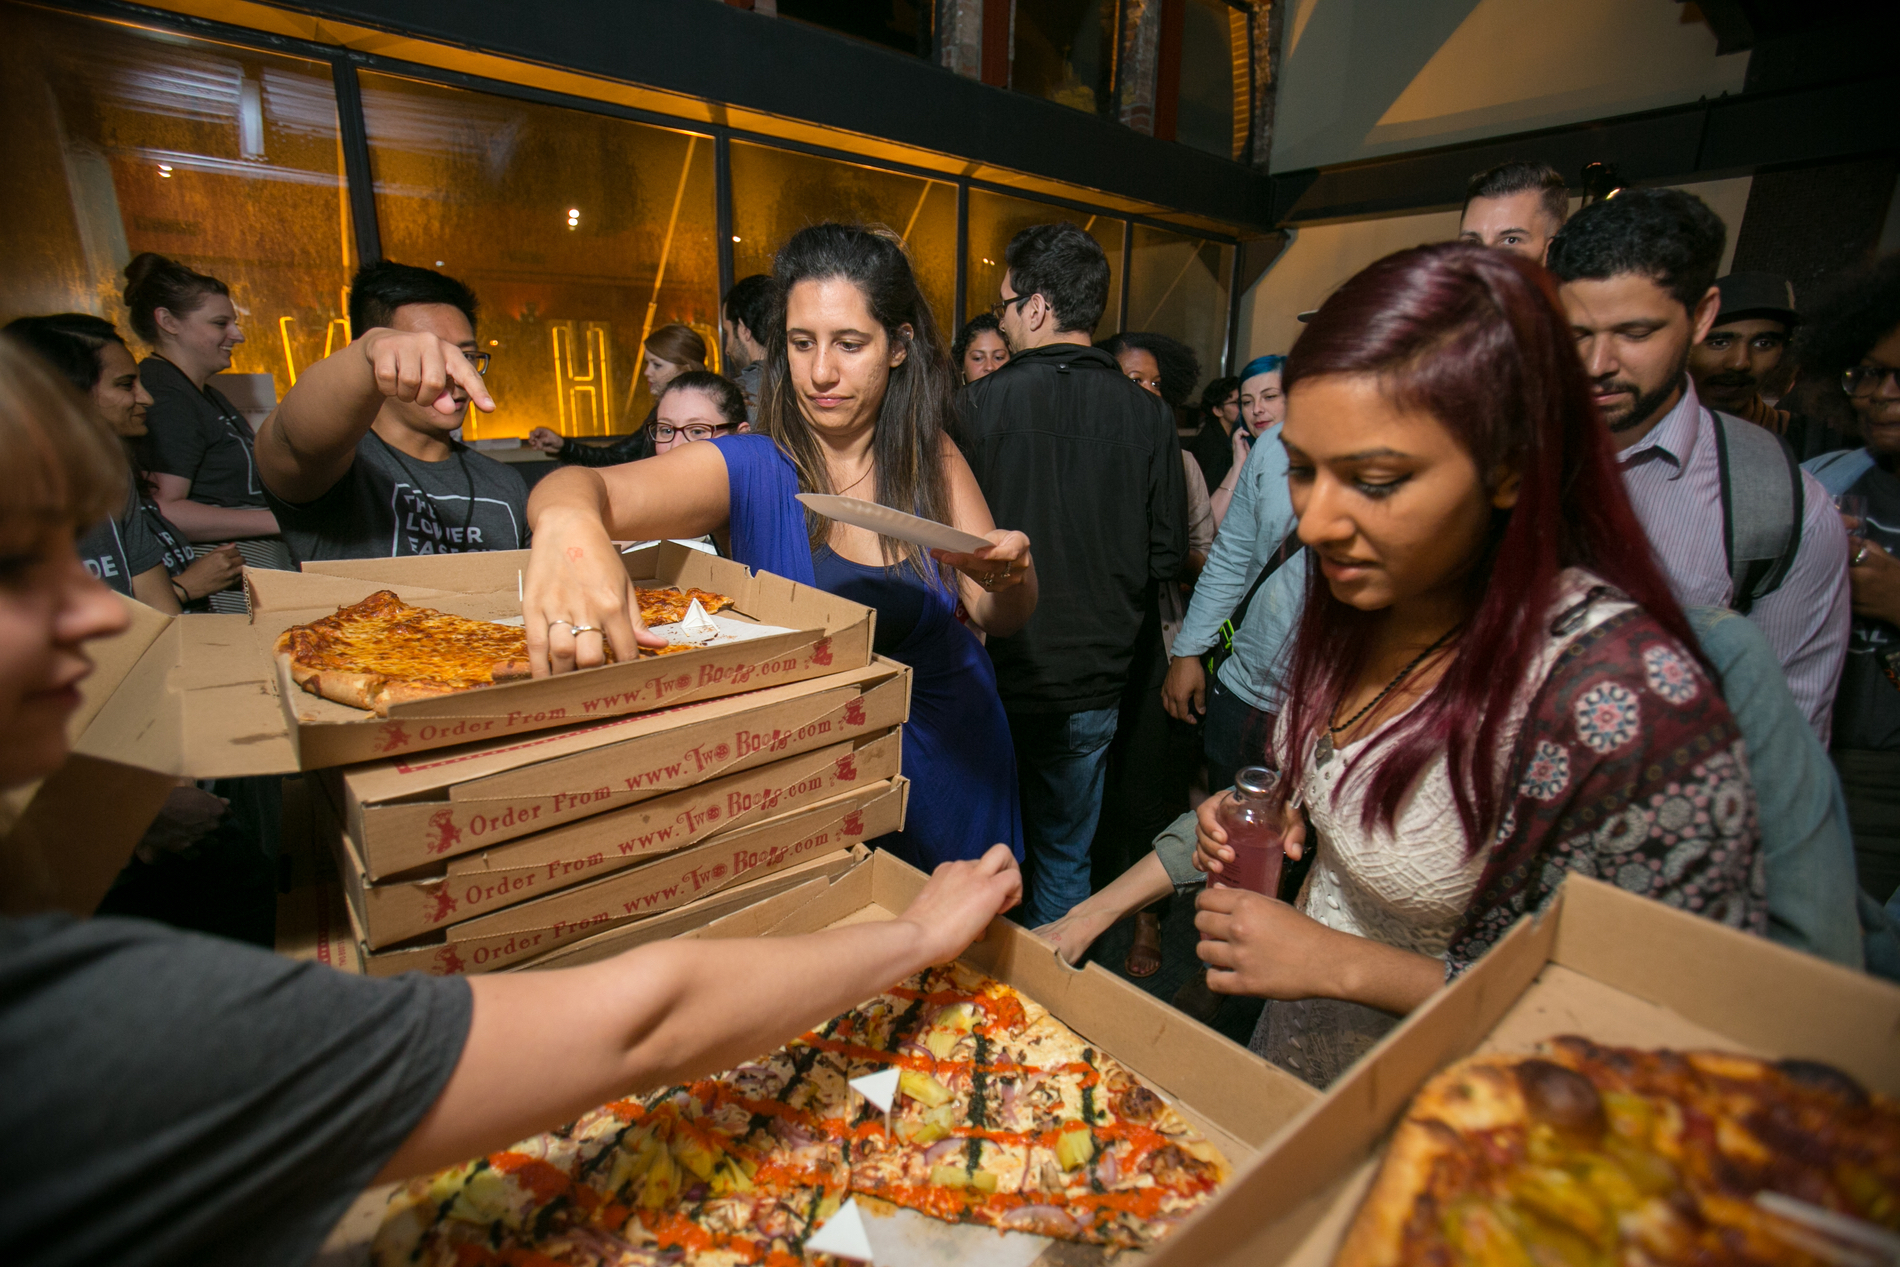 Pizza Party for Ninja Turtles II Lower East Side Film Festival